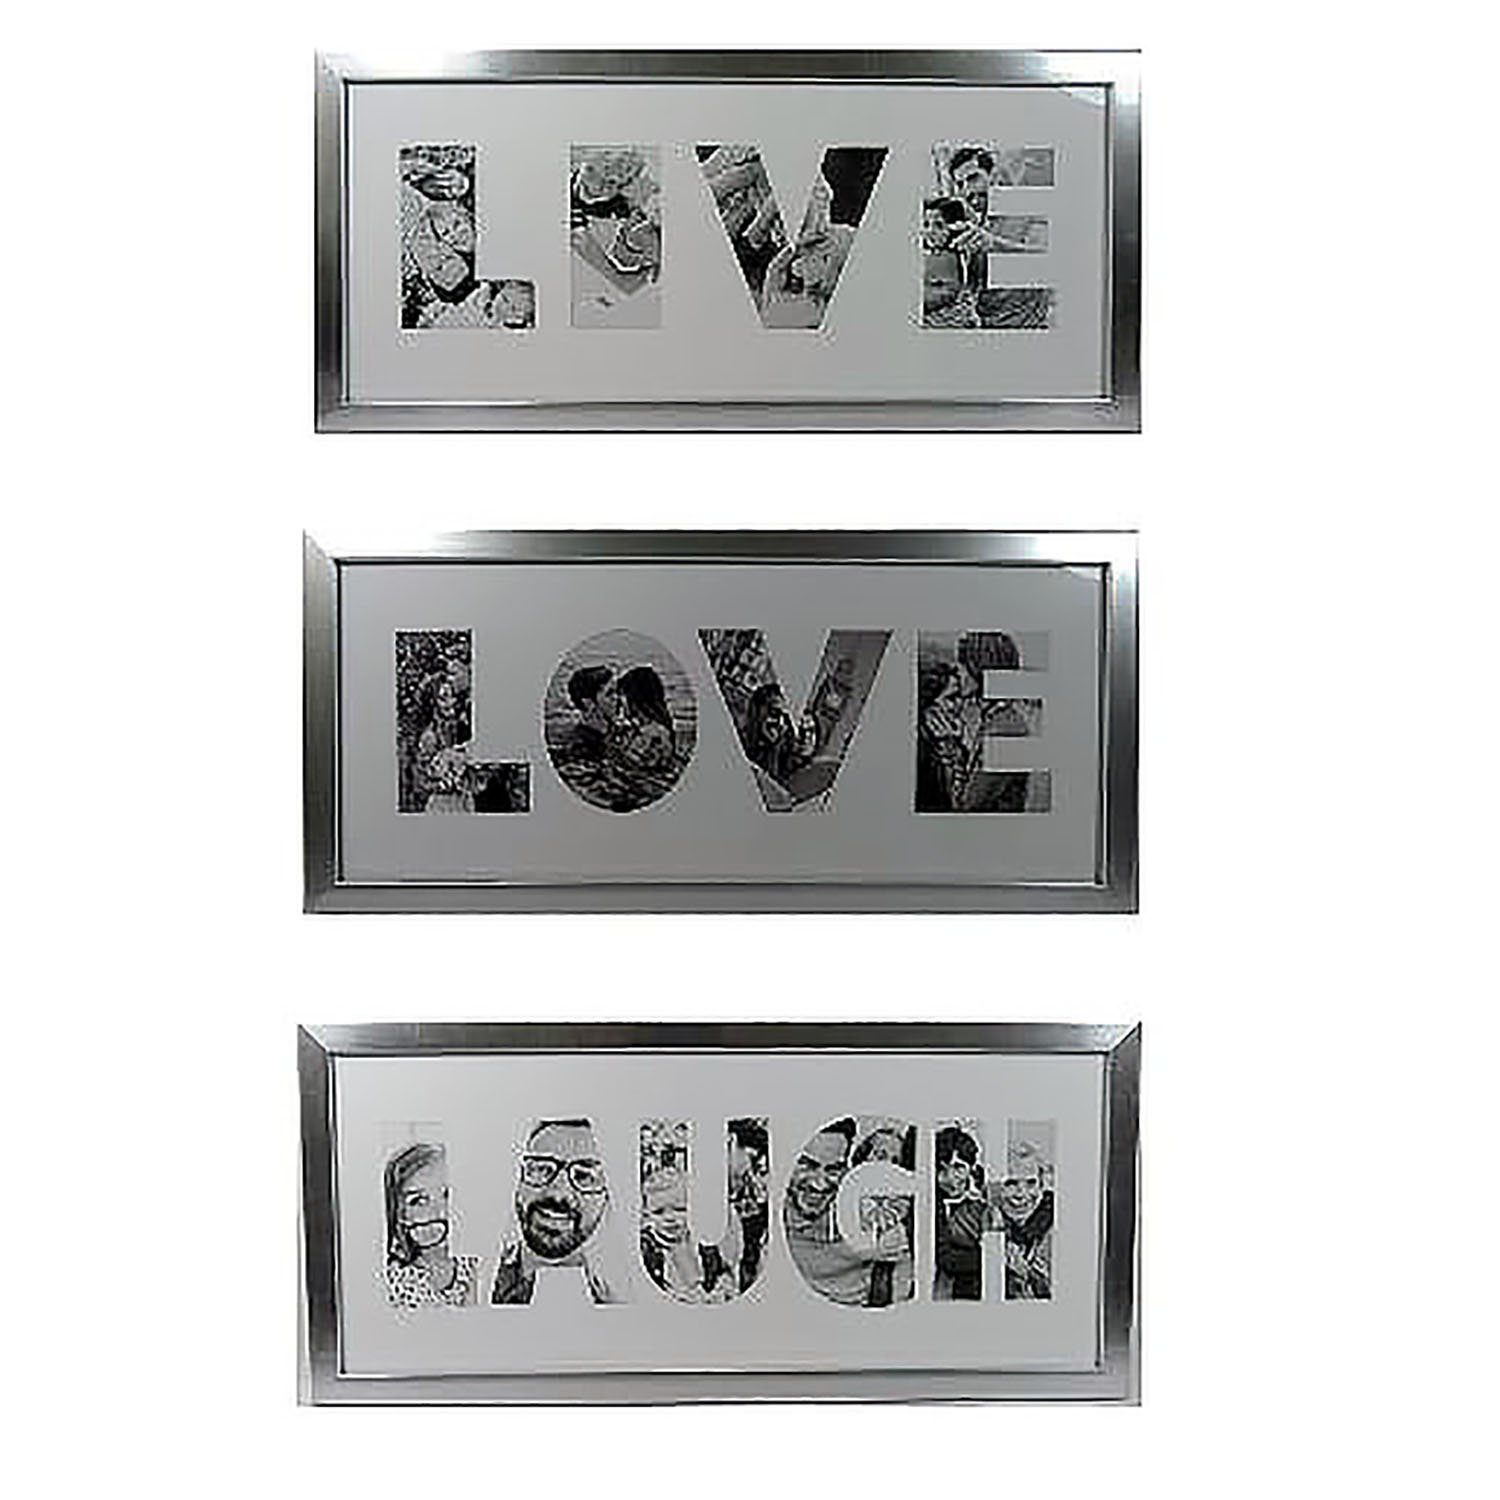 6x14 Picture Frames Set of 3 LIVE LOVE LAUGH - Made to Display Pictures in each letter sizes 6x3.5 Easy To Hang Saw tooth Hook or Place Standing with added Swivel Tab - By Ashes to beauty